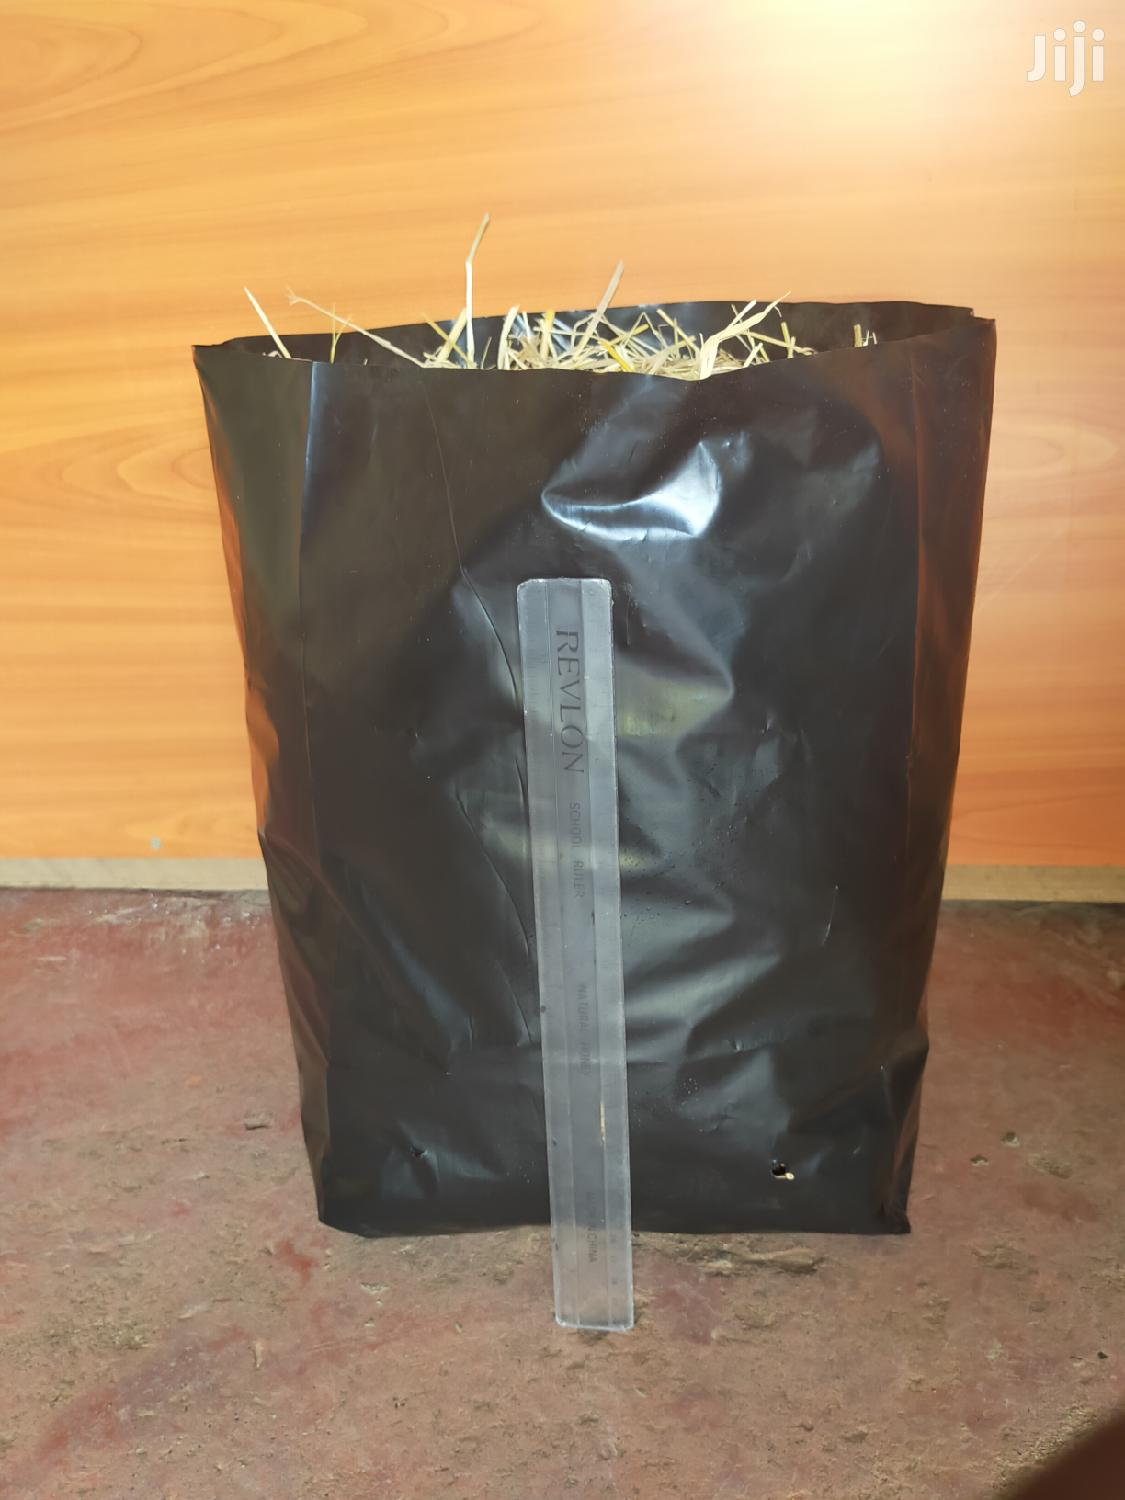 Greenhouse Tomatoes Planting Bags | Meals & Drinks for sale in Nairobi Central, Nairobi, Kenya